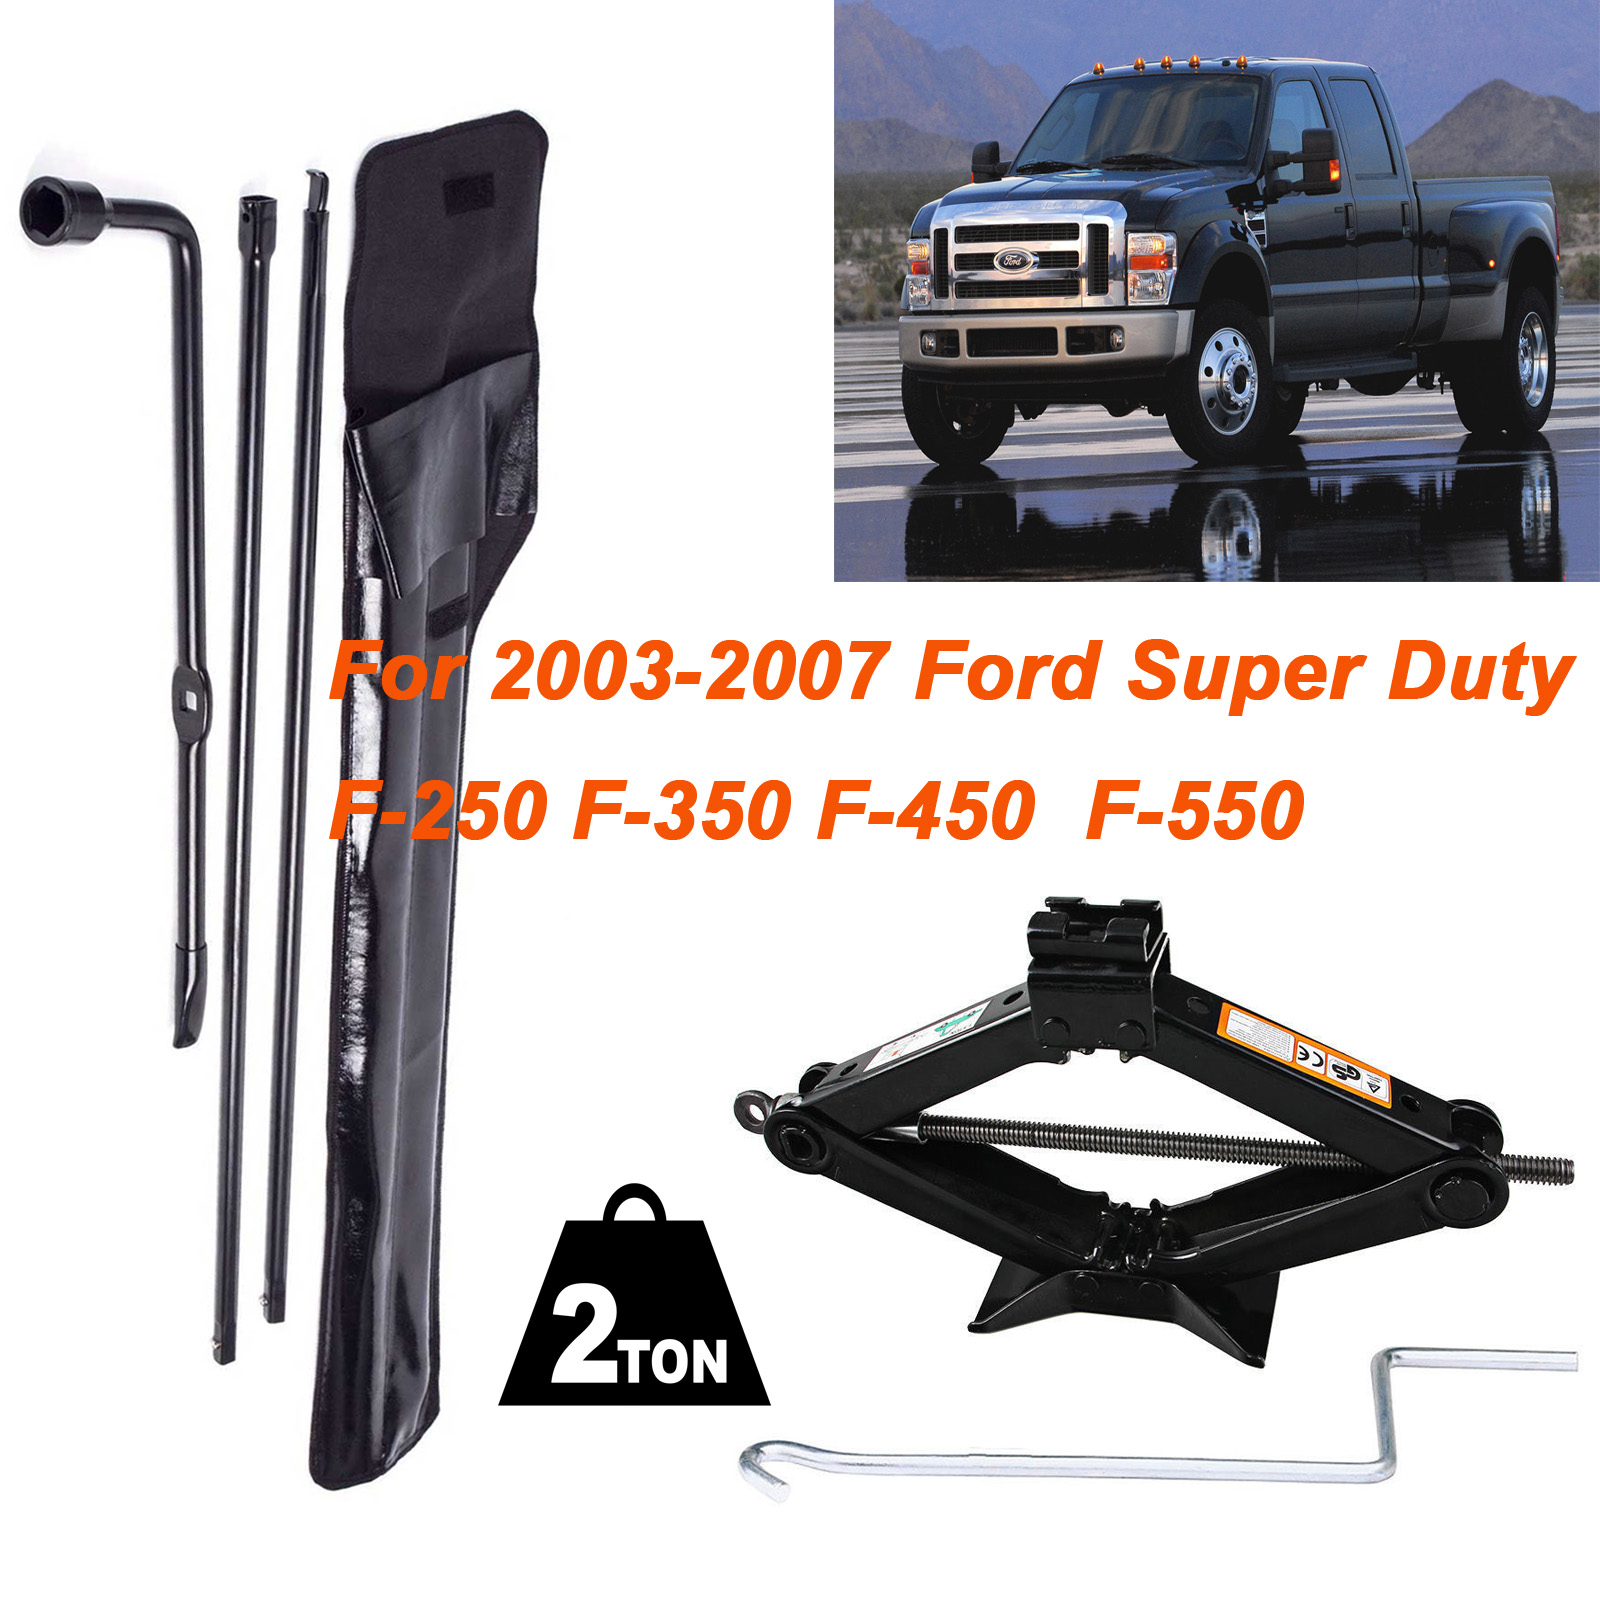 Details about Scissor Jack+Truck Spare Tire Set Kit Replacement Tool for  Ford F250/350/450/550